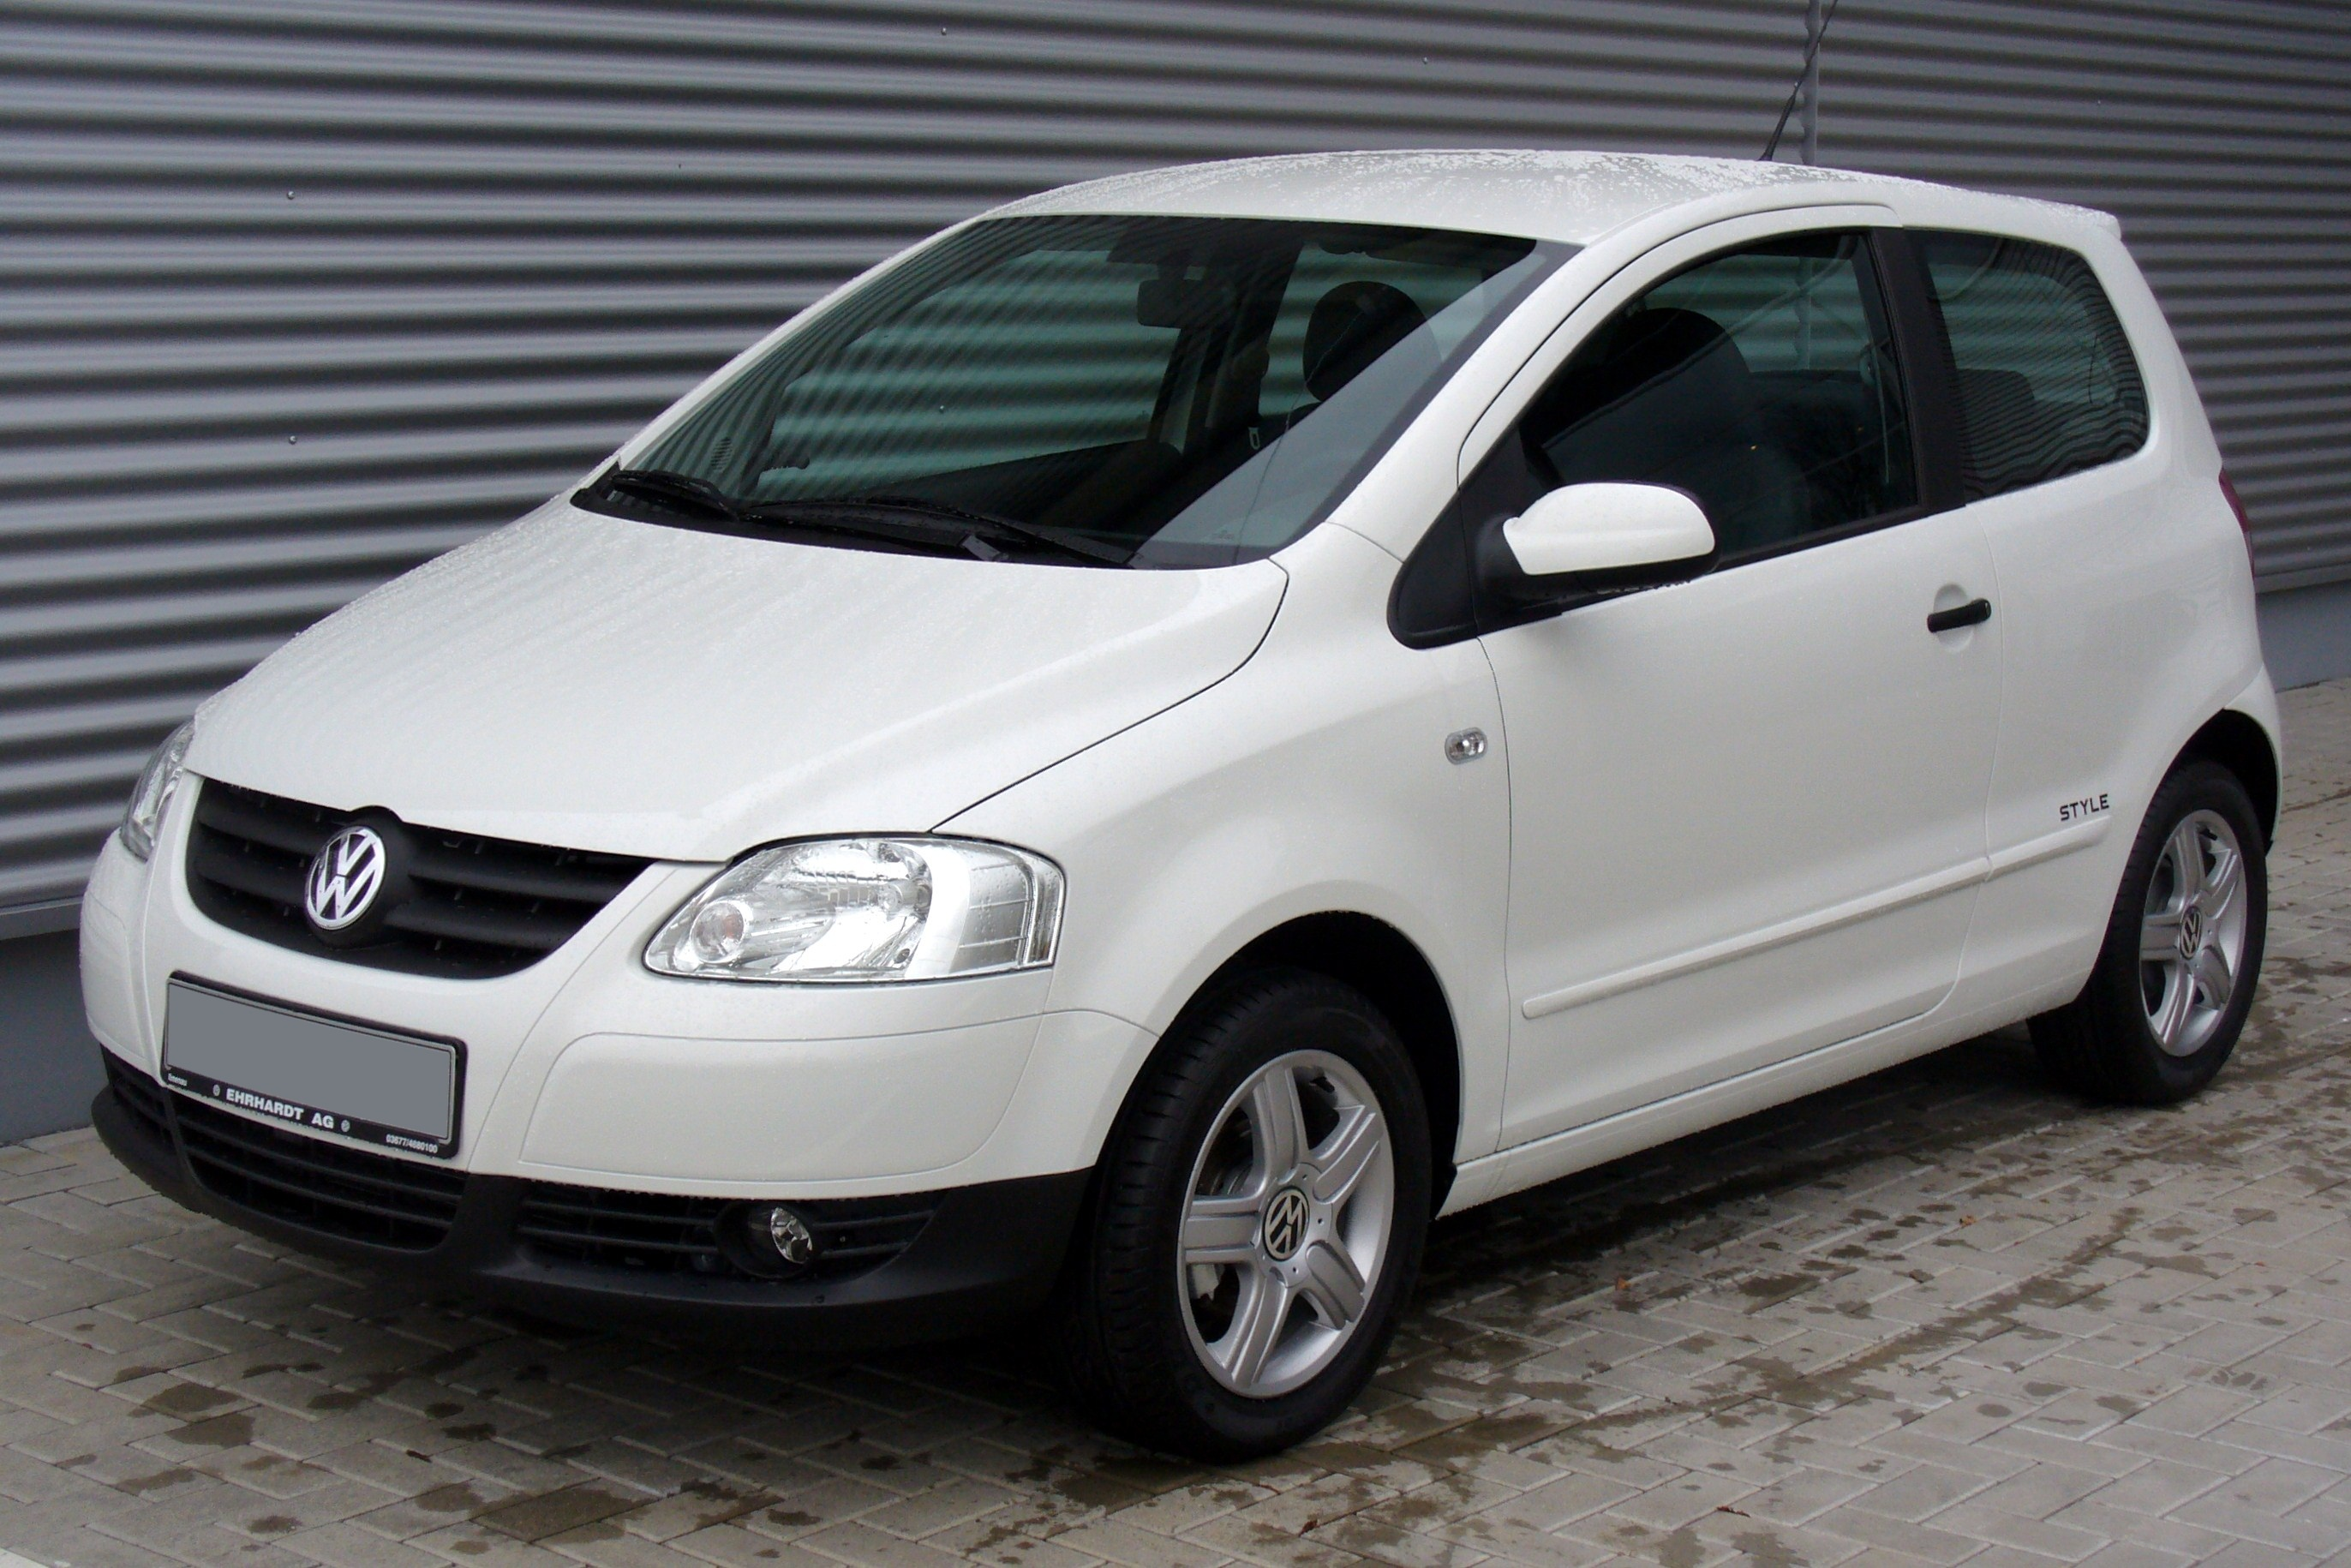 2010 volkswagen fox pictures information and specs. Black Bedroom Furniture Sets. Home Design Ideas